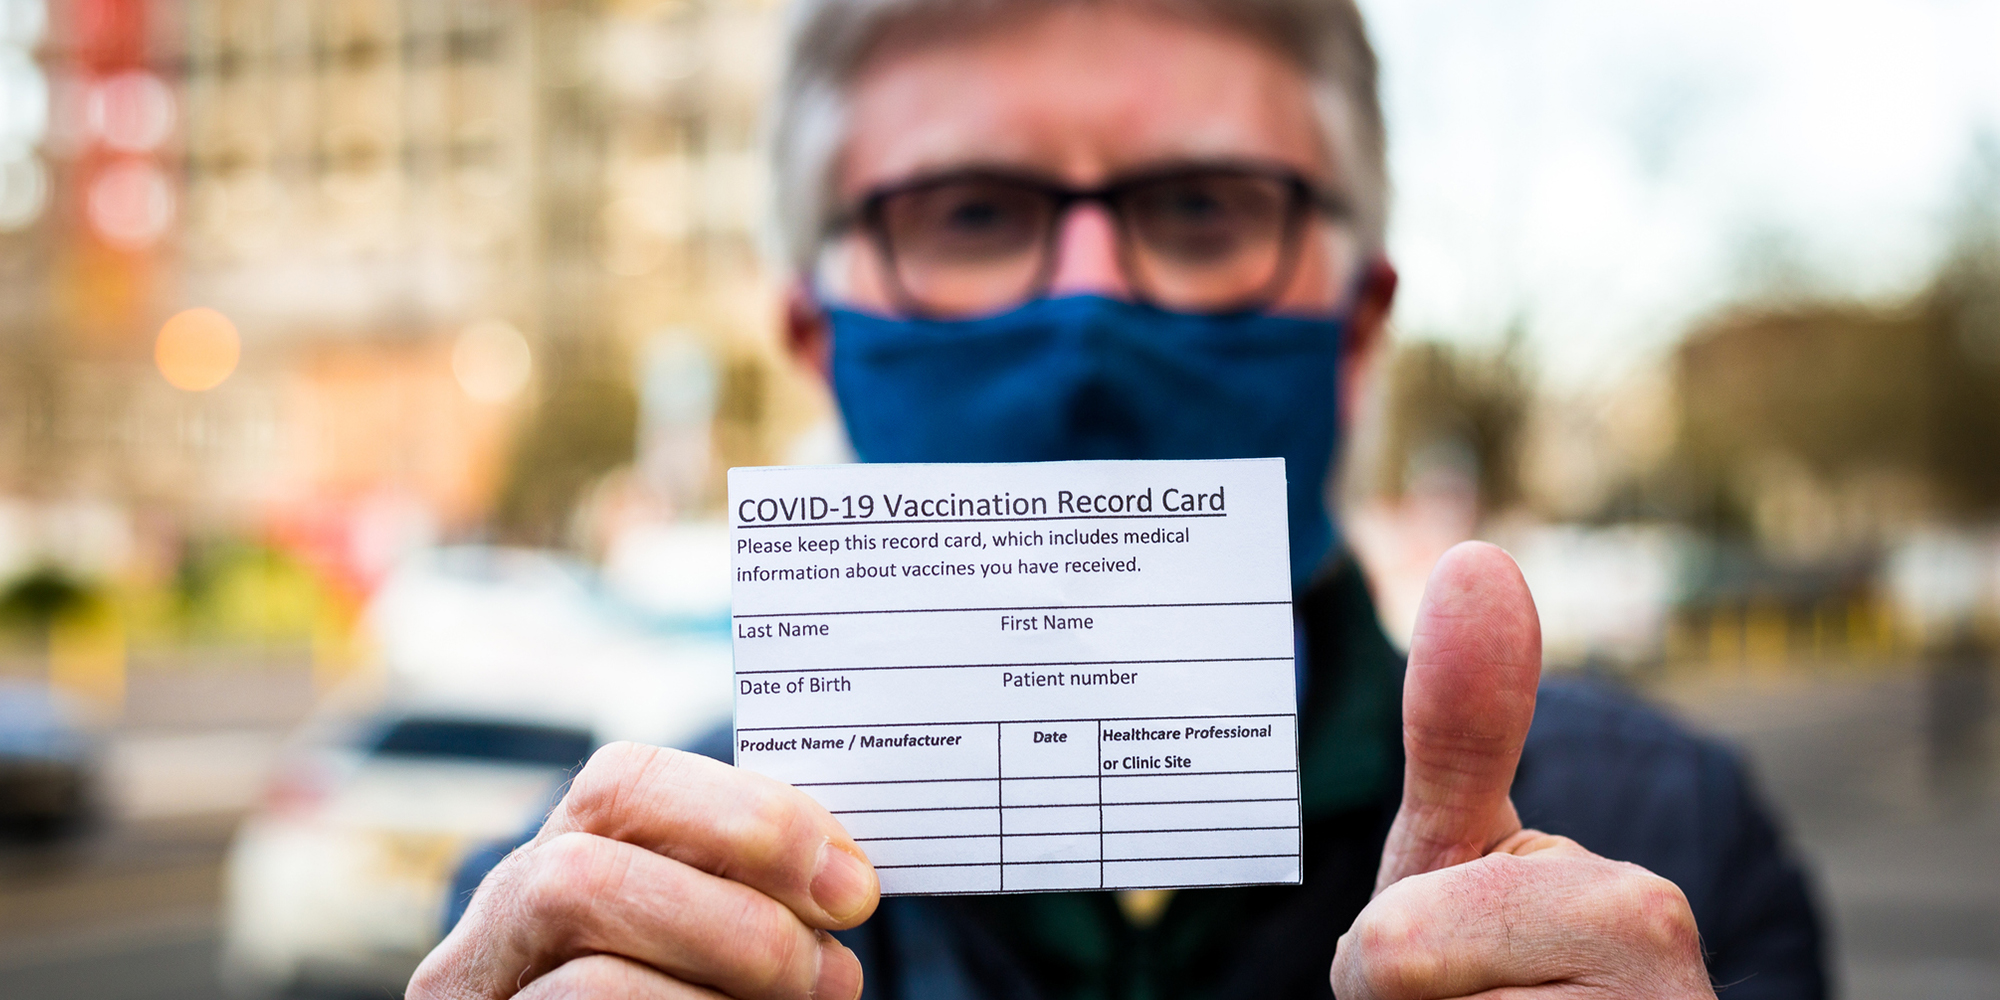 Cancer patient holding covid vaccine information card